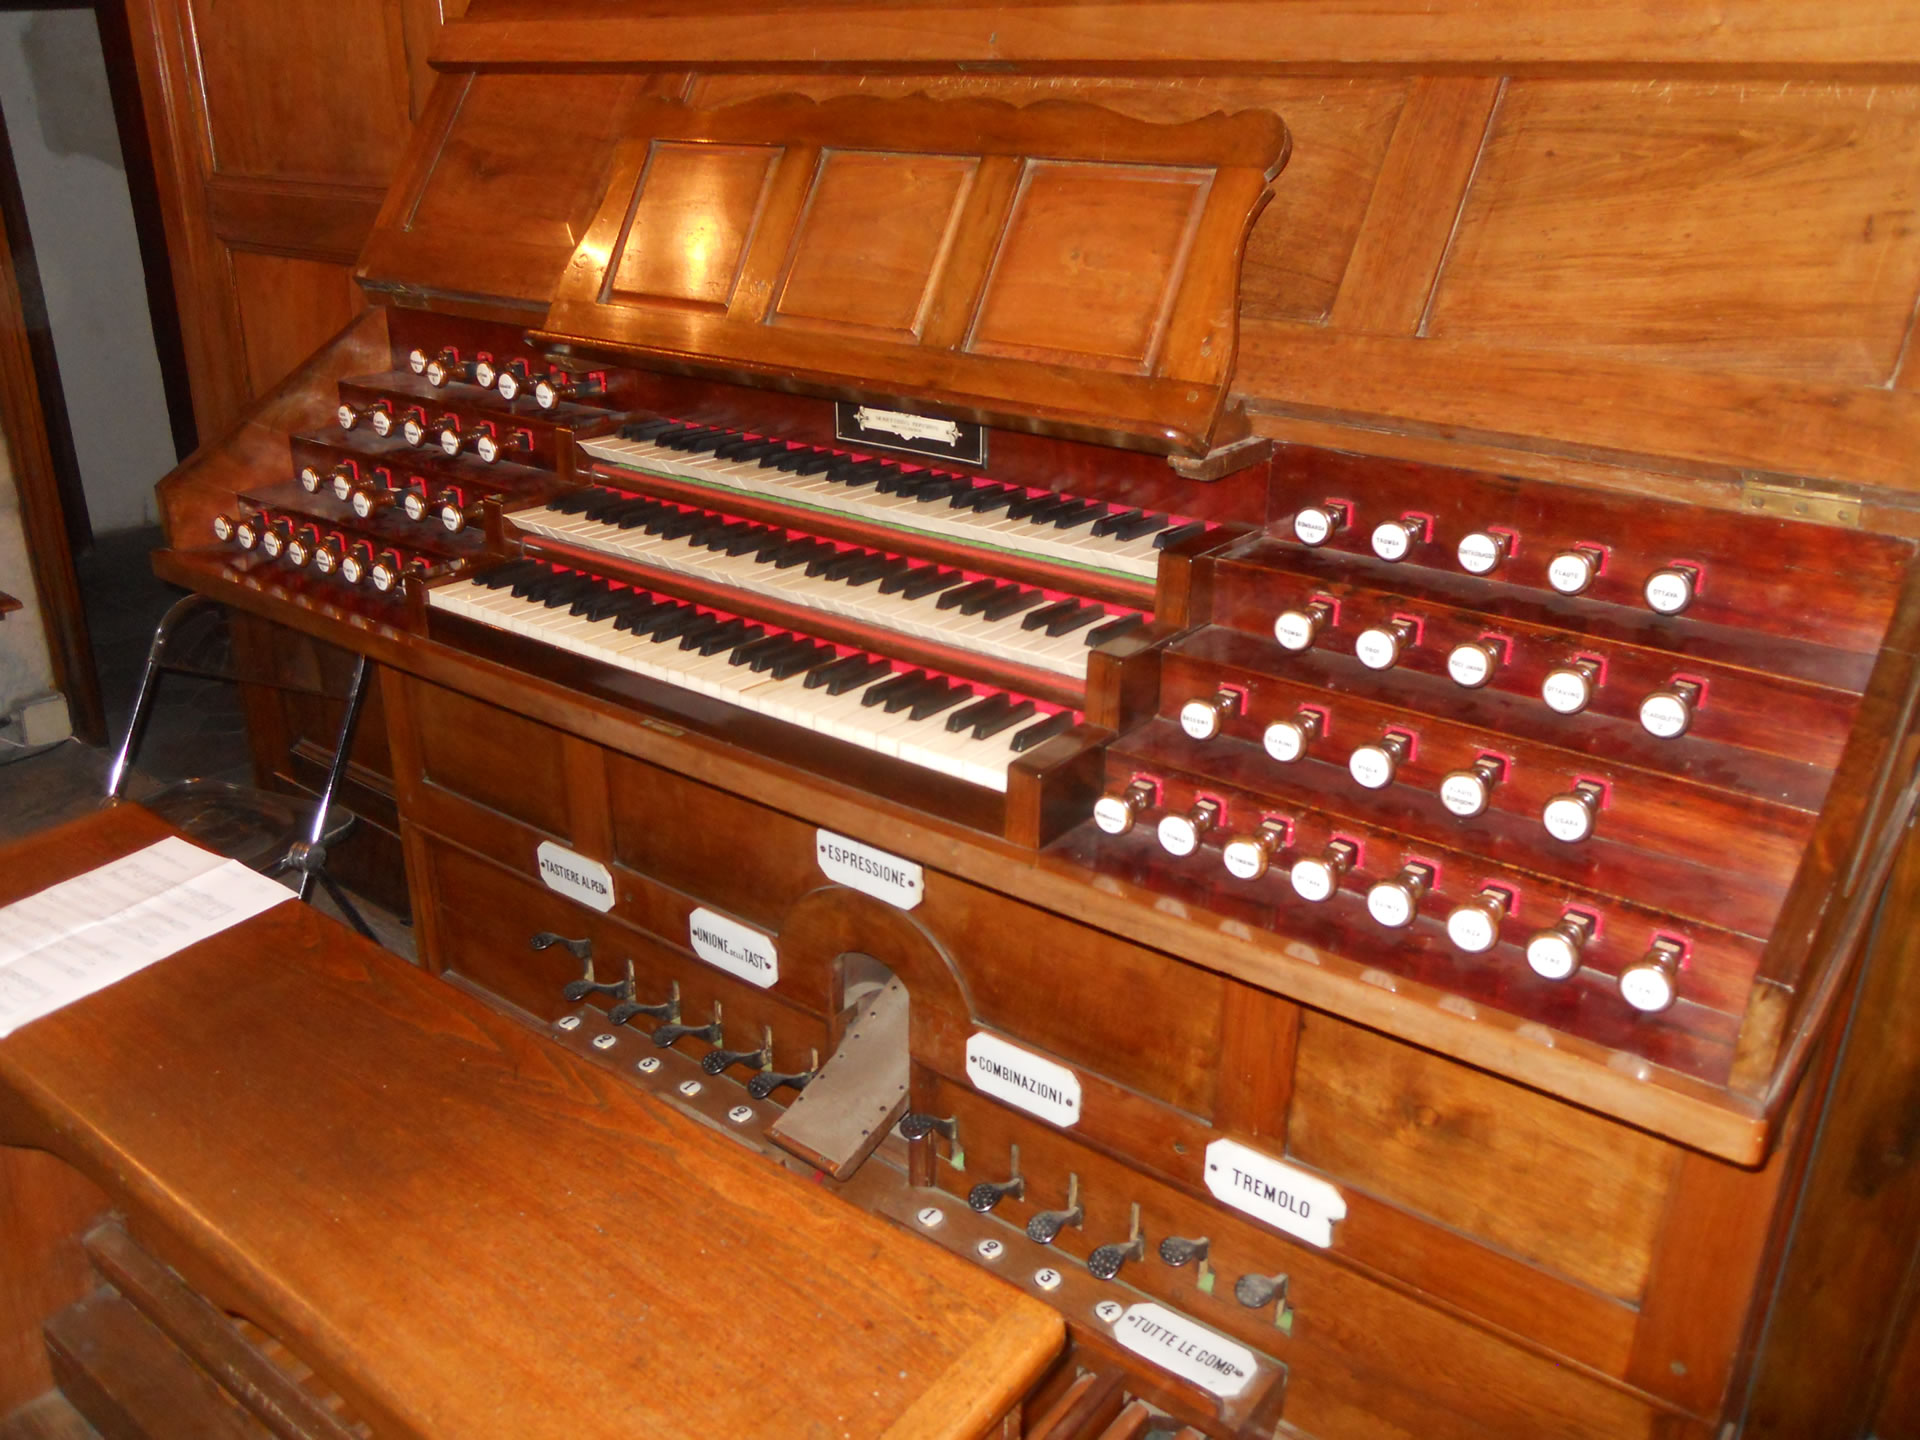 An itinerary of historic church organs